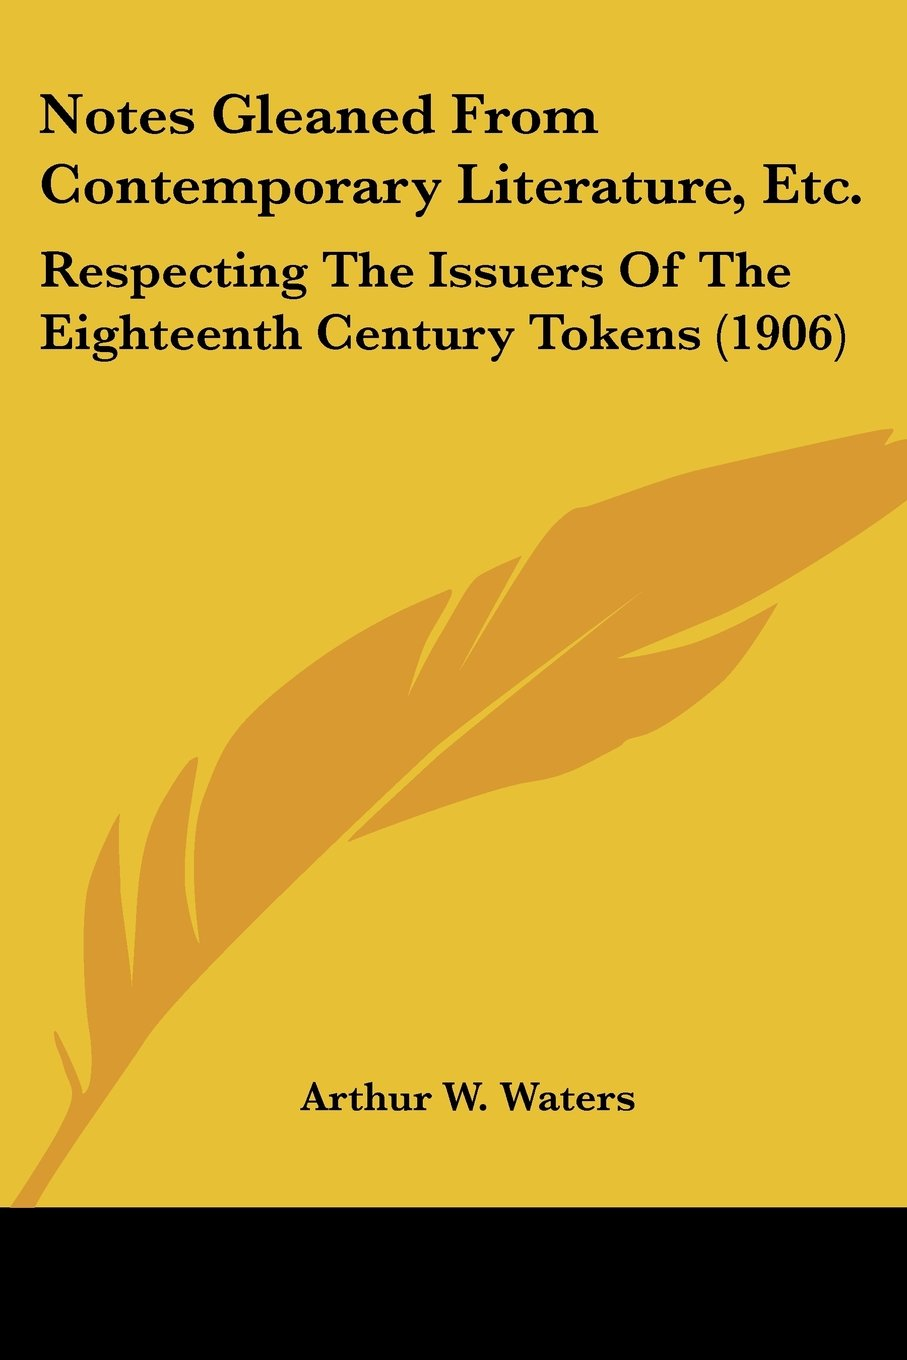 Notes Gleaned From Contemporary Literature, Etc.: Respecting The Issuers Of The Eighteenth Century Tokens (1906) pdf